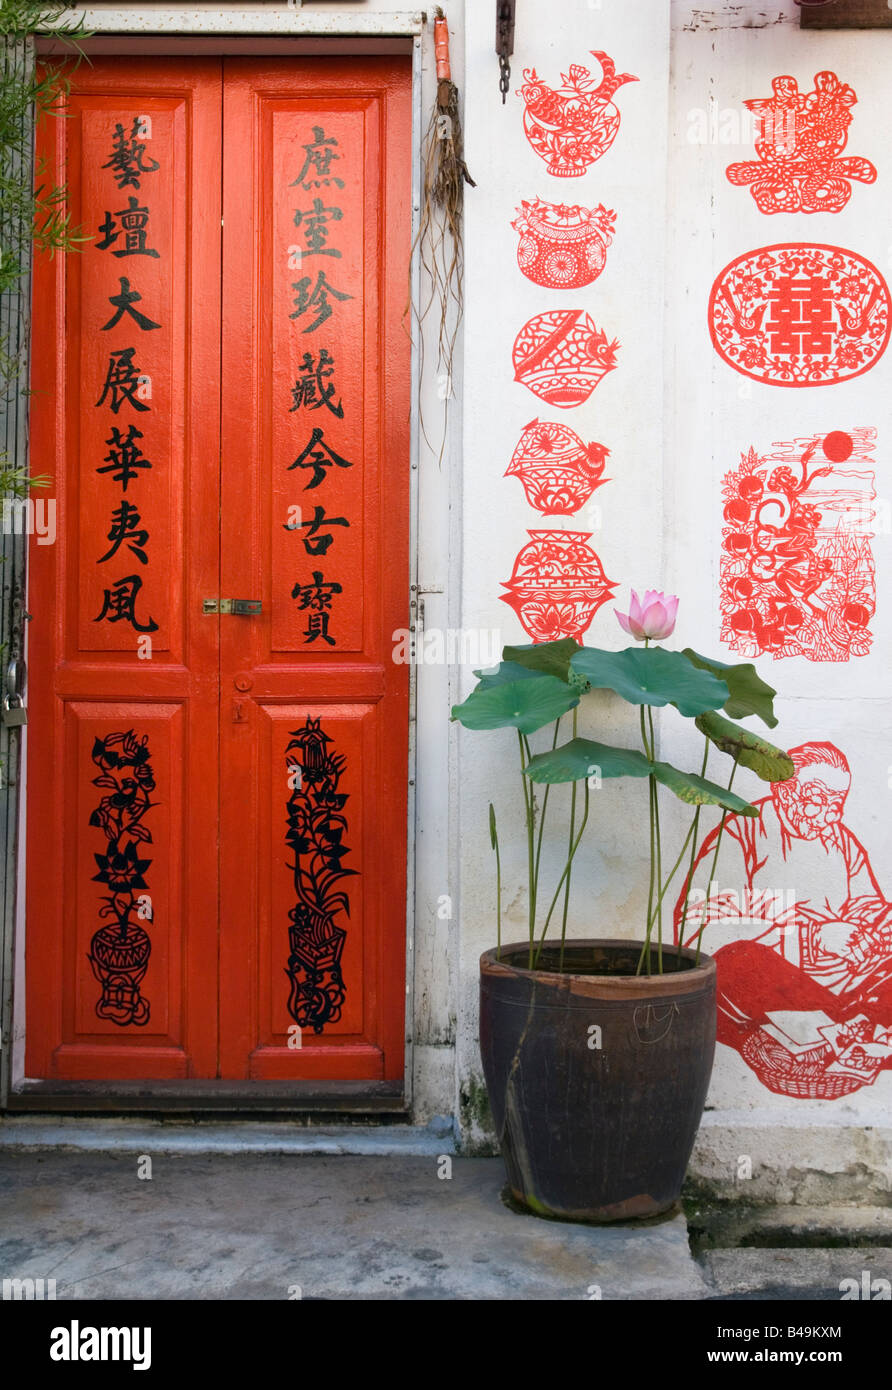 Chinatown detail with double red doors and characters painted on the exterior walls behind a lotus plant in Malacca, - Stock Image